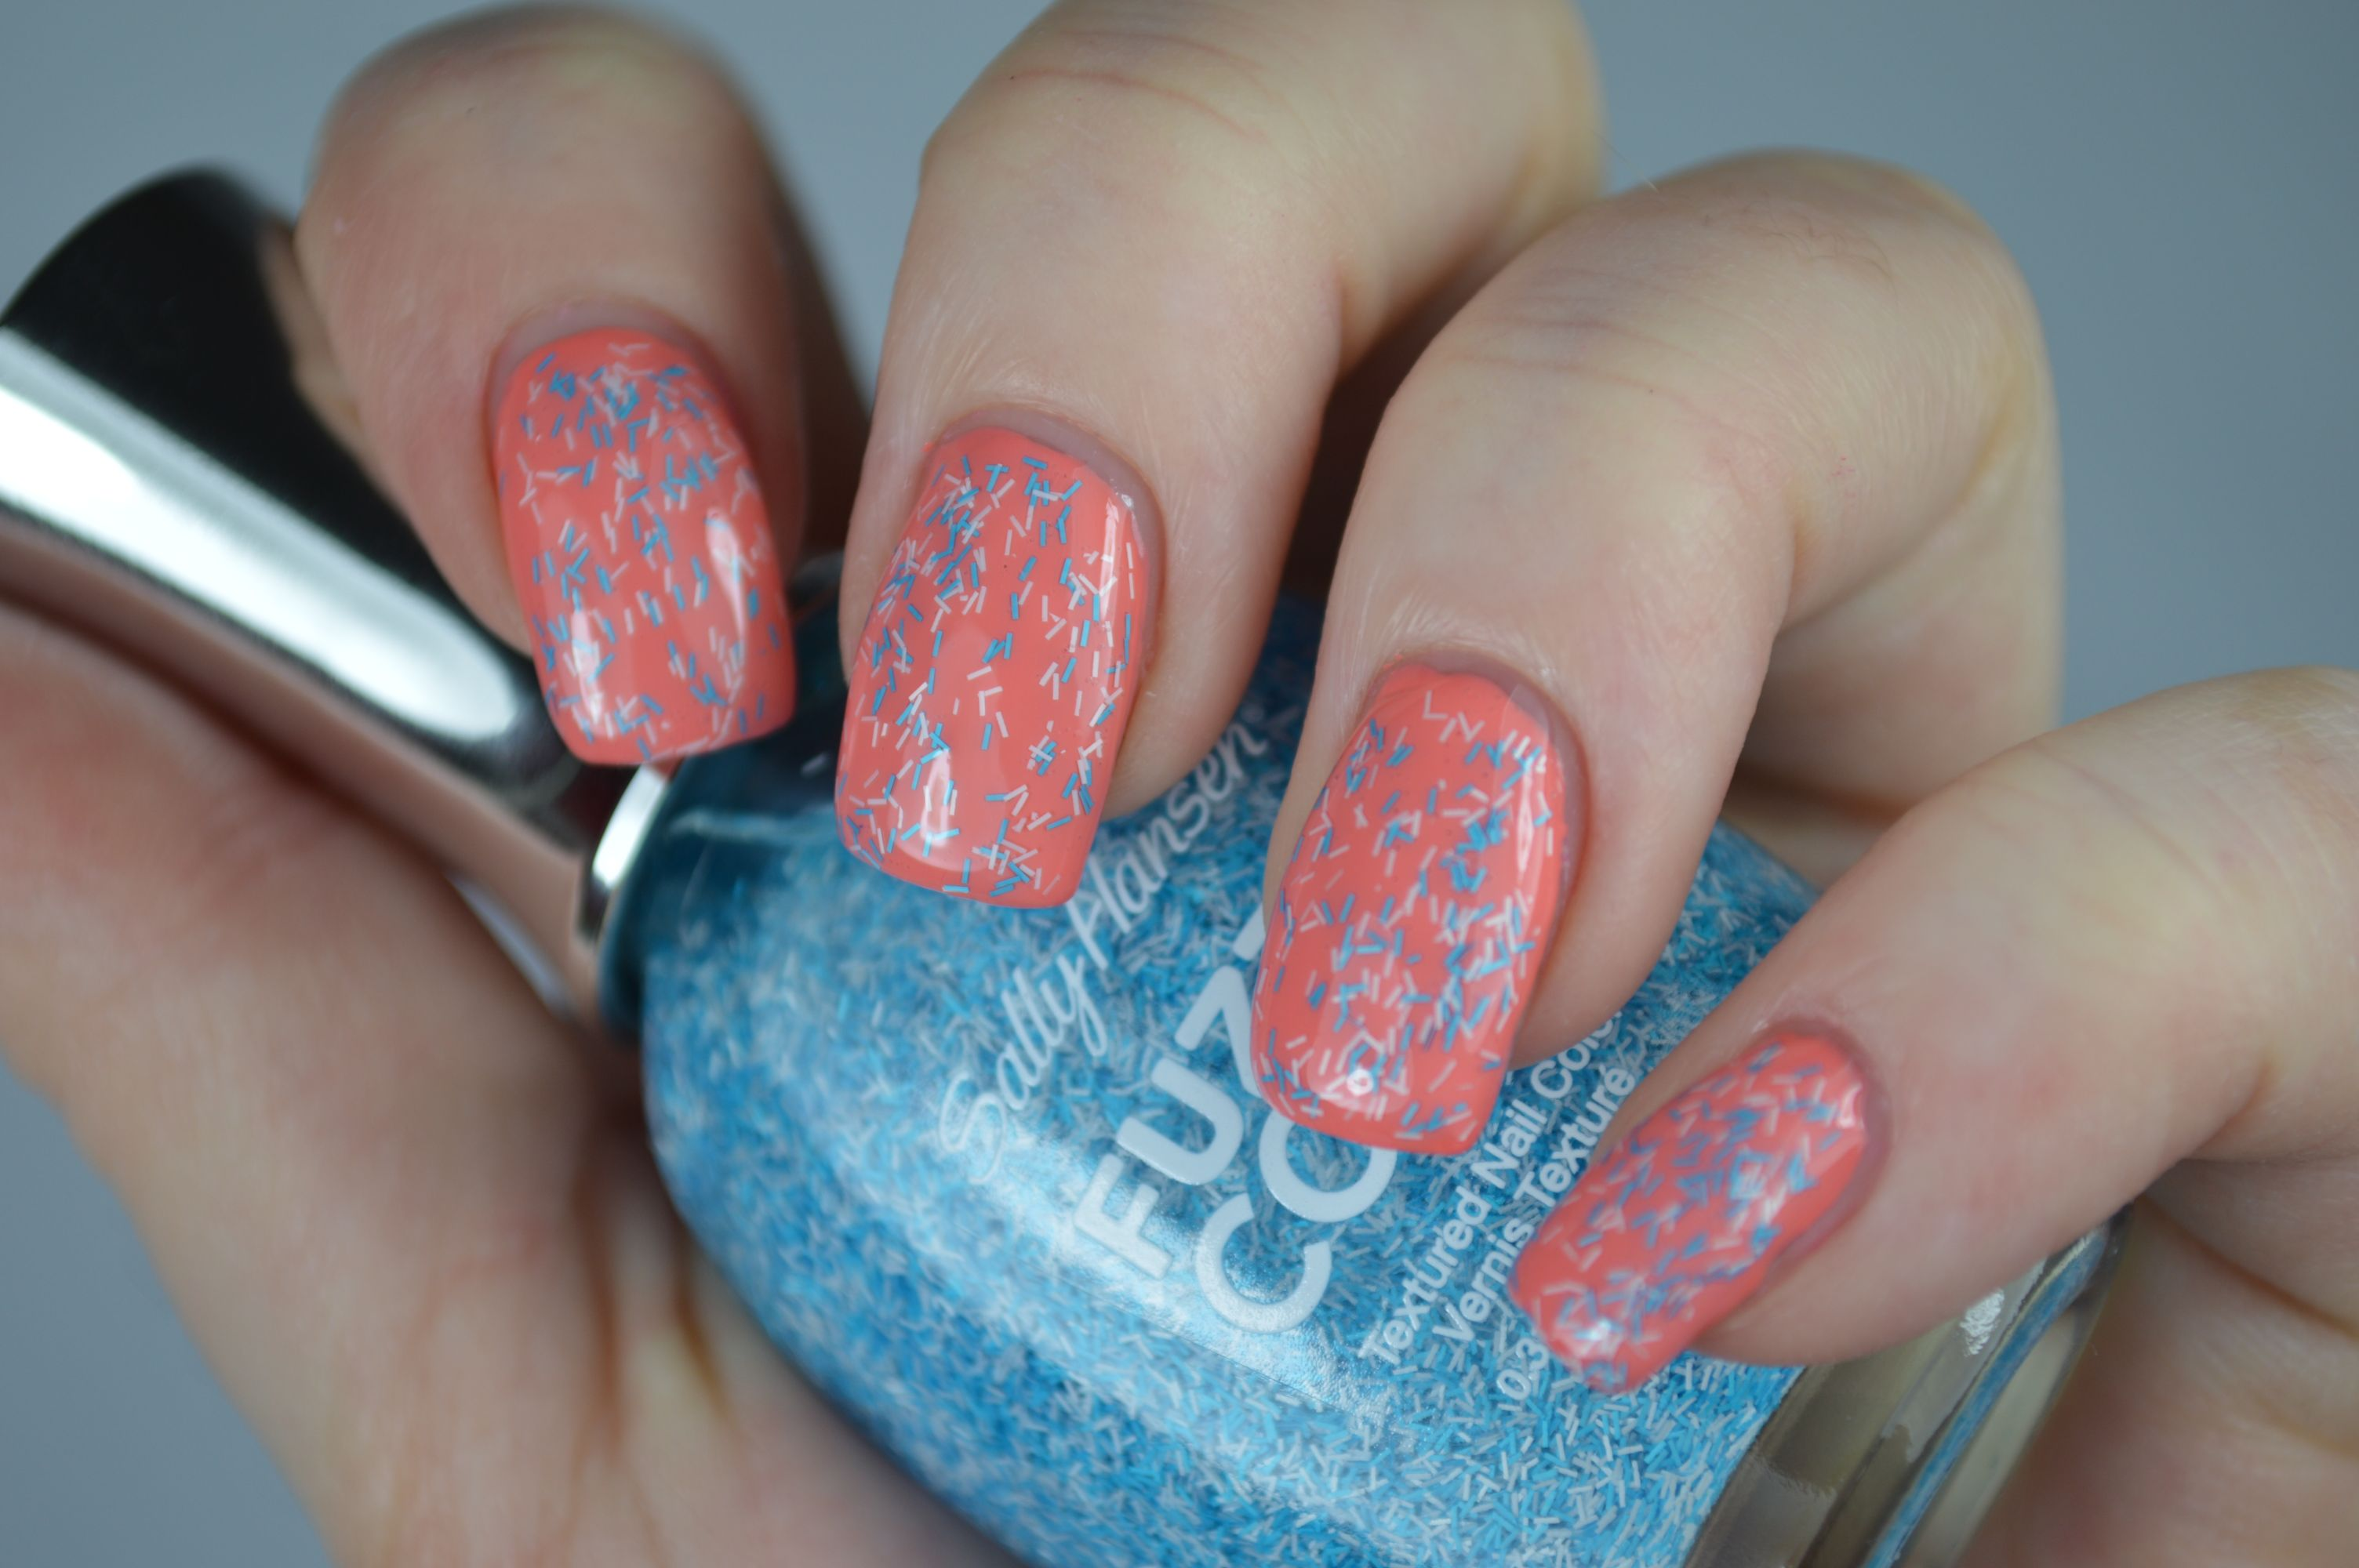 Wool Knot Sally Hansen Fuzzy Coat Peach of Cake Swatches